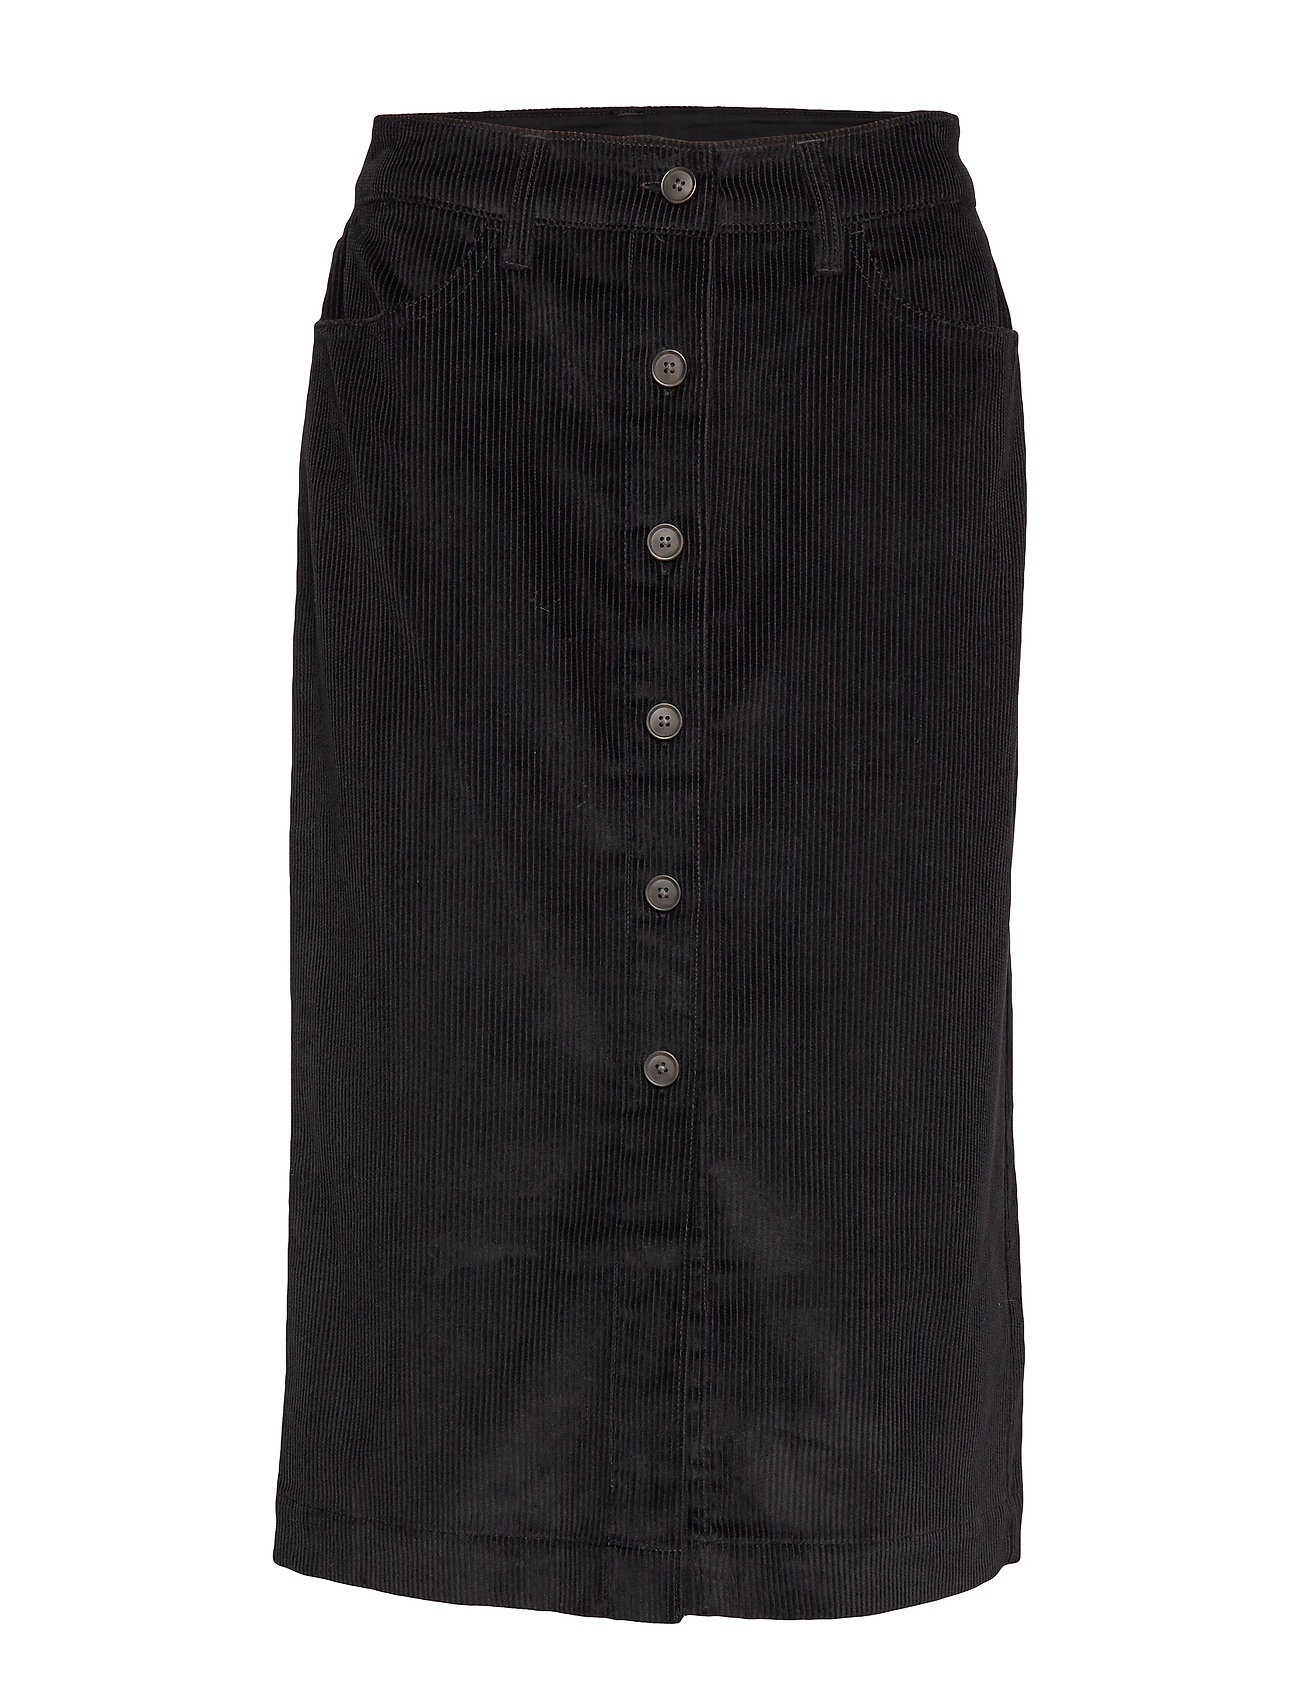 GAP Corduroy Button-Front Midi Skirt - TRUE BLACK V2 3